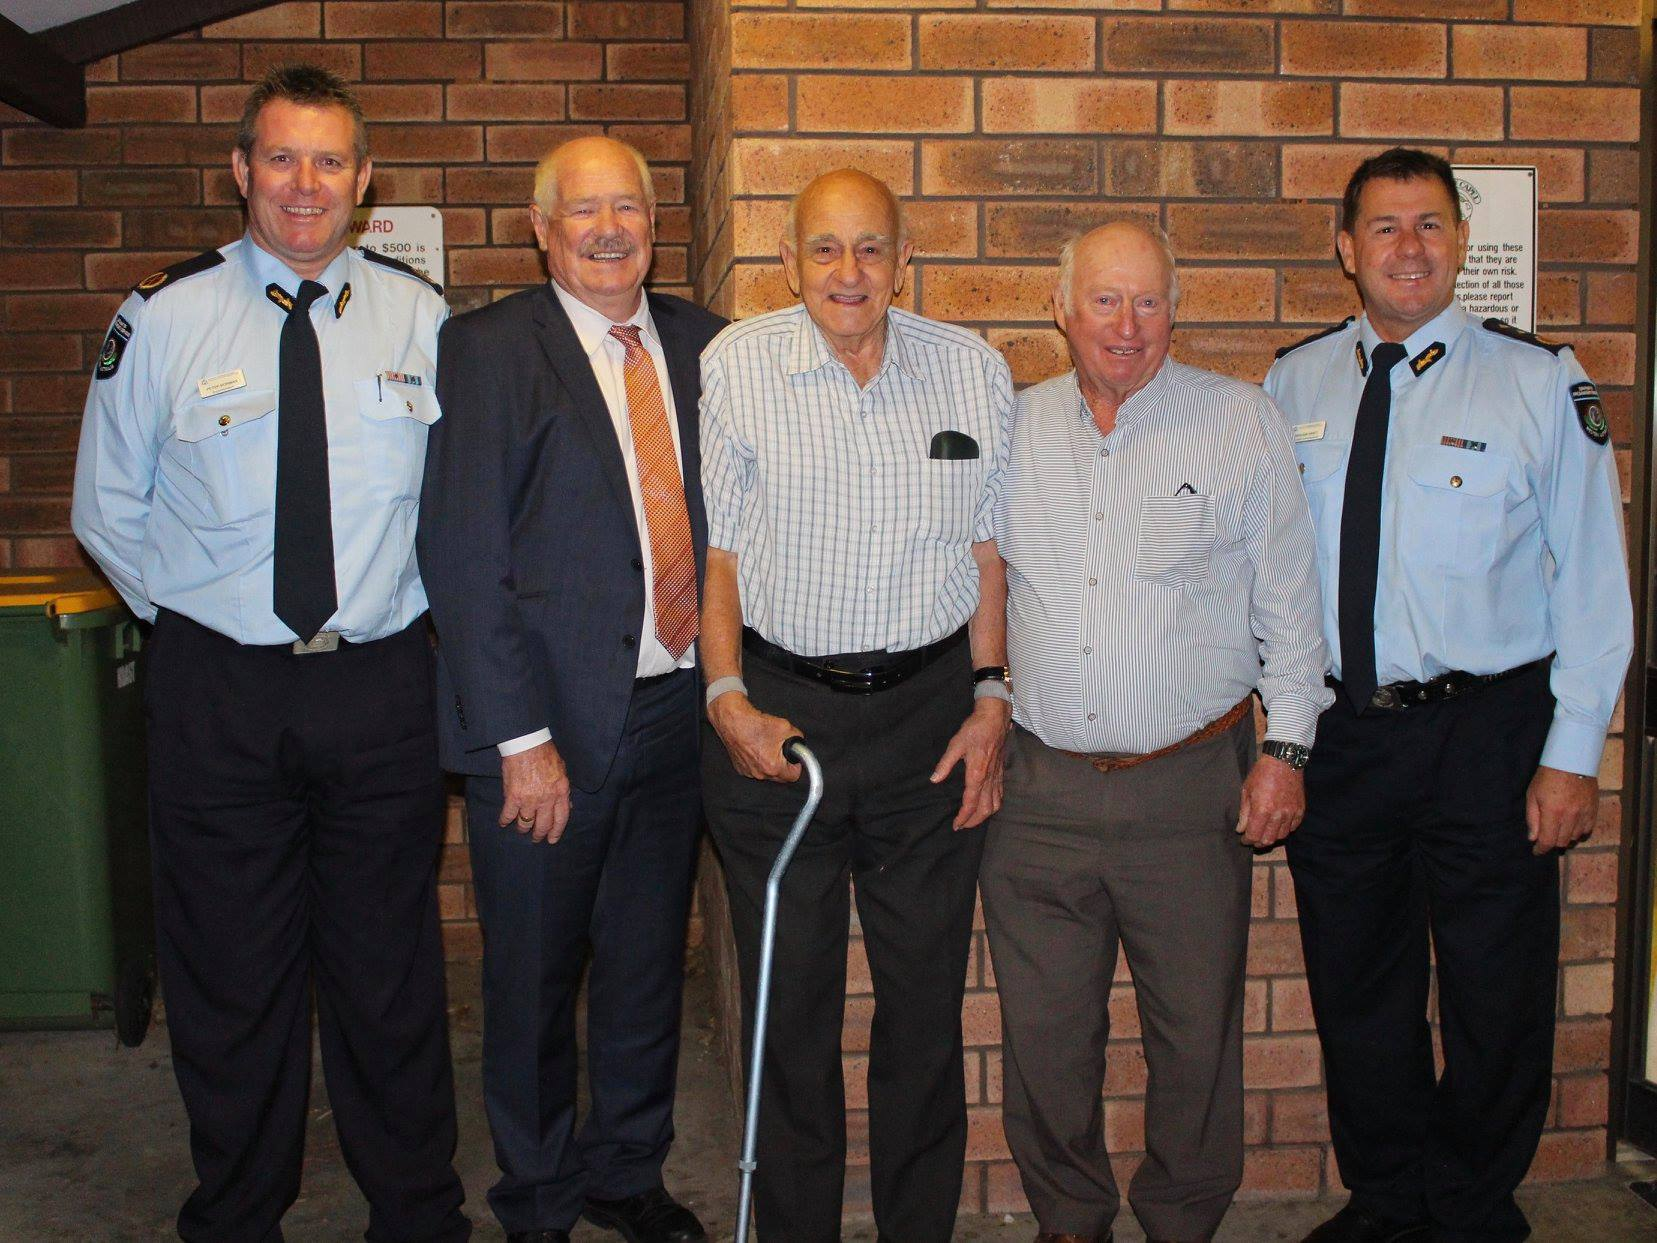 Minister for Volunteering Mick Murray and others congratulate Capel Bush Fire Brigade's John James and Elgin Bush Fire Brigade's John Prowse for 60 years of service.